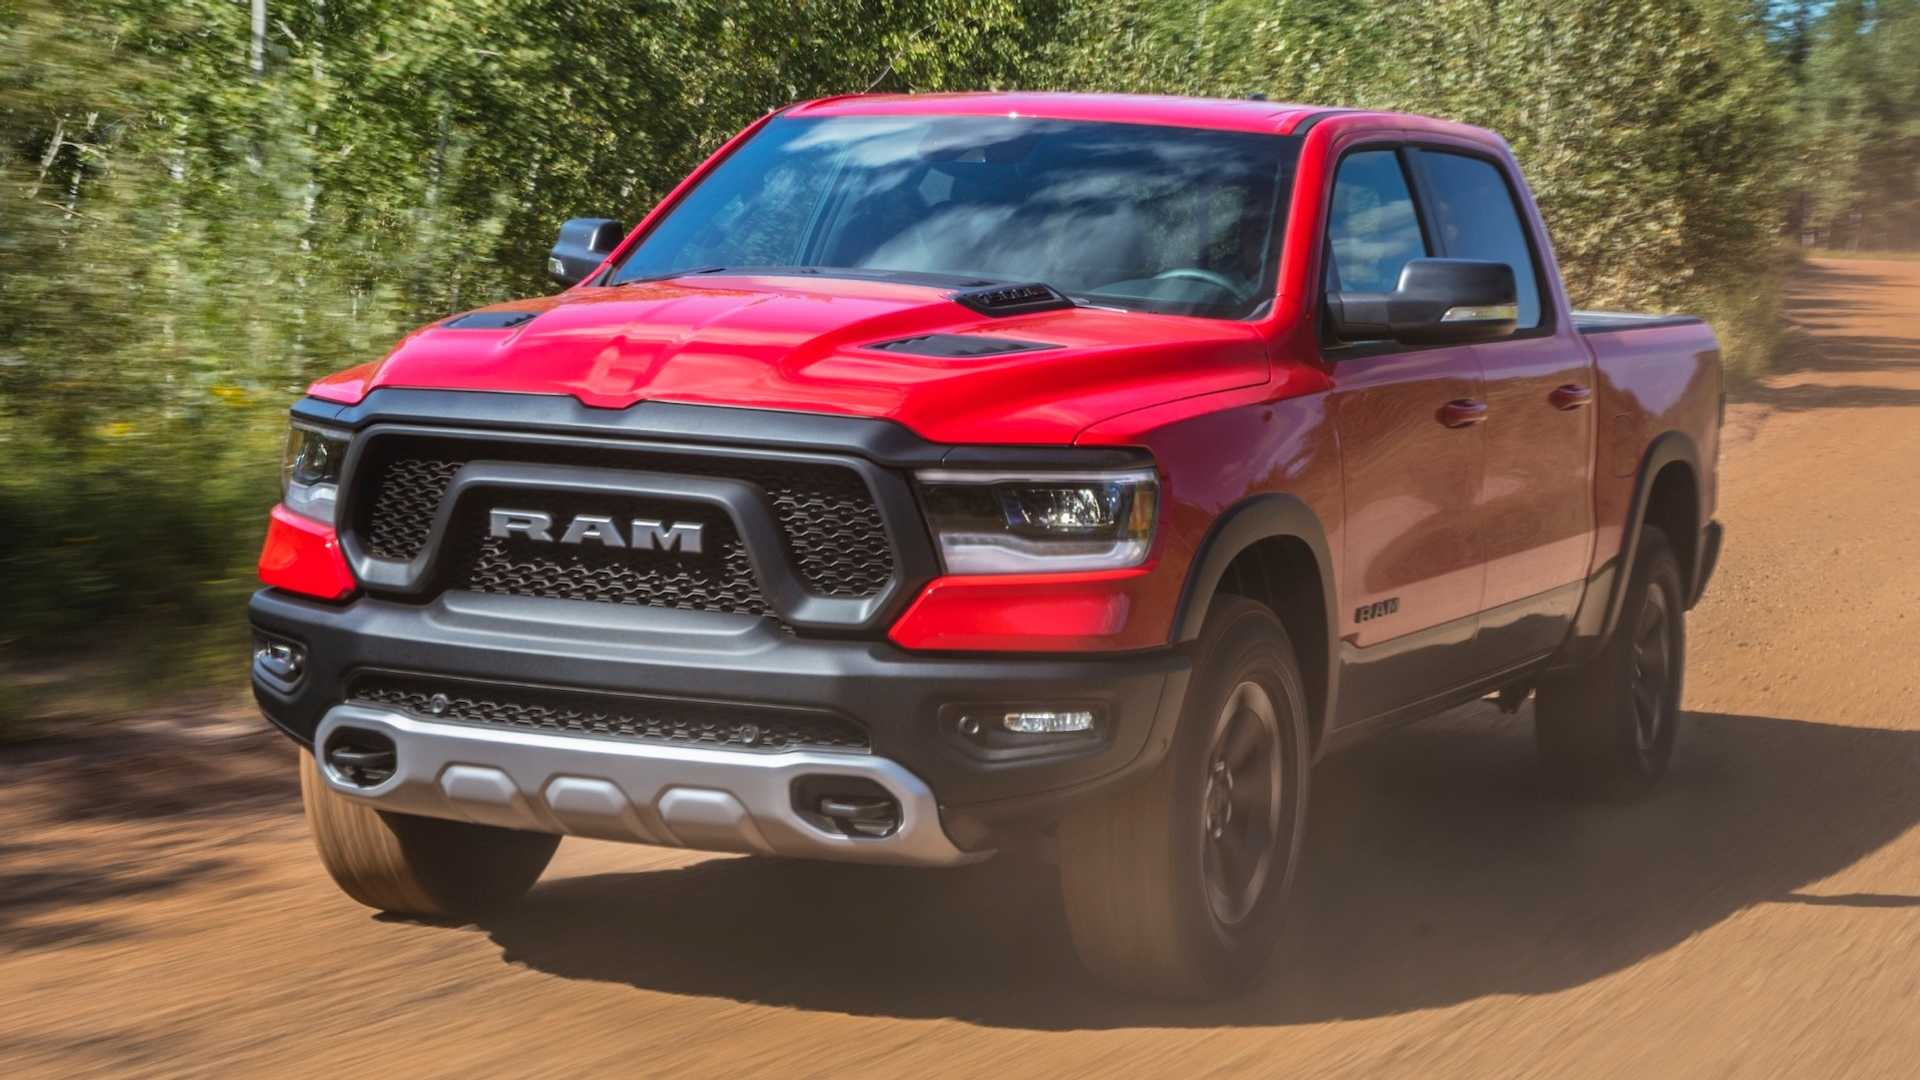 2020 Ram Ecodiesel Review.Ram 1500 Ecodiesel Rated At Up To 26 Mpg Combined Fuel Economy